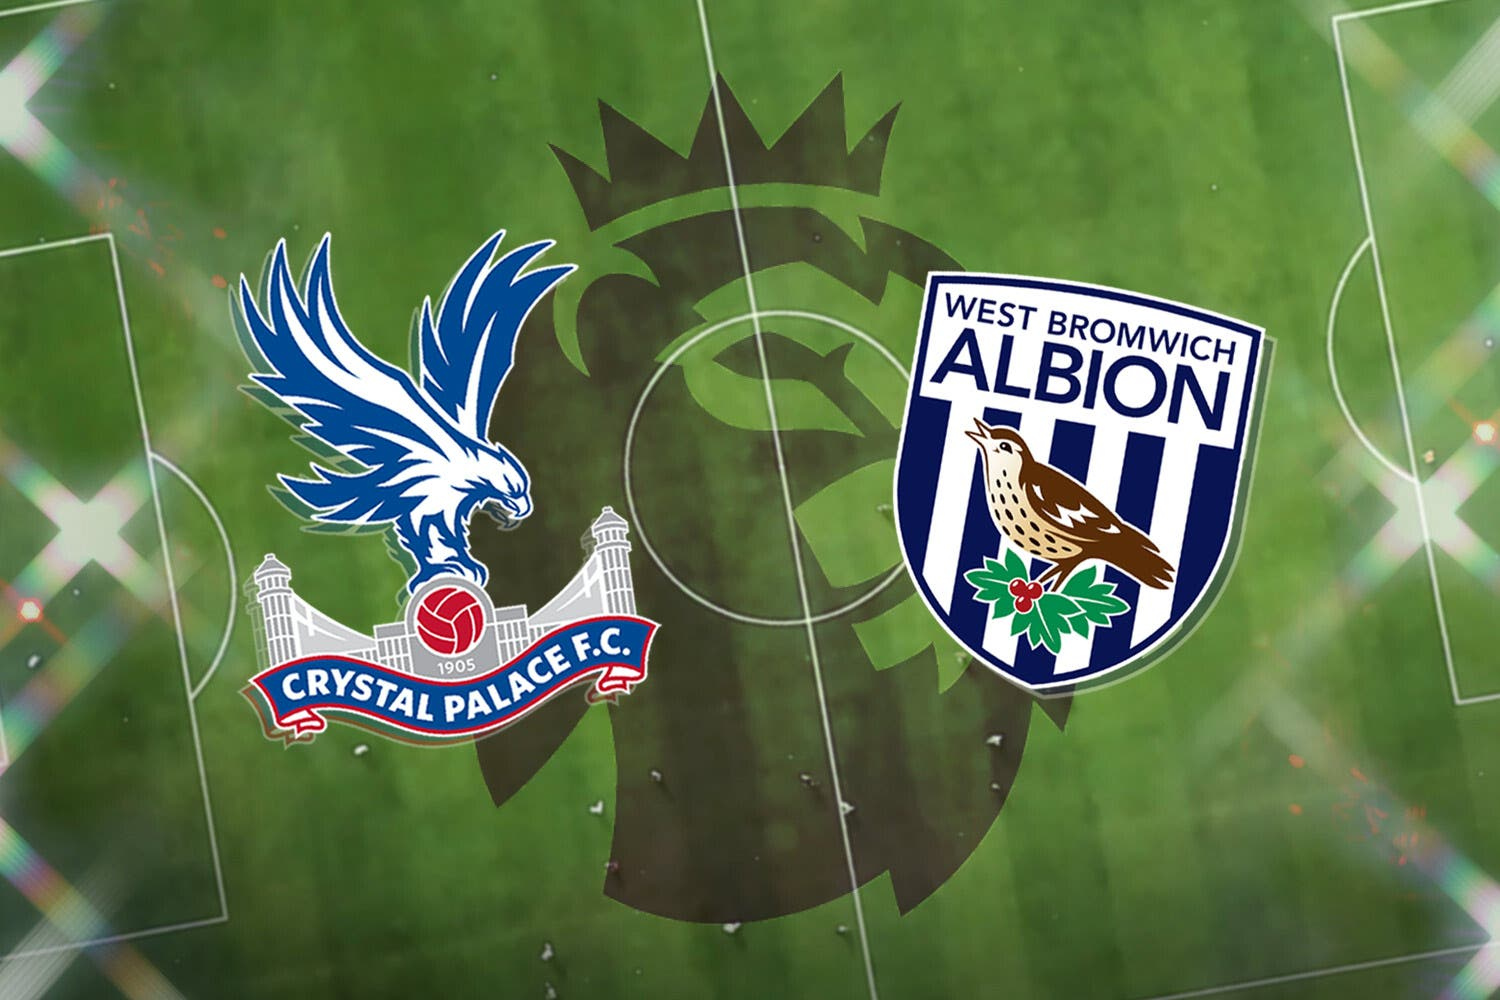 Crystal Palace vs West Brom: Prediction, TV channel, h2h results, team news, live stream, odds